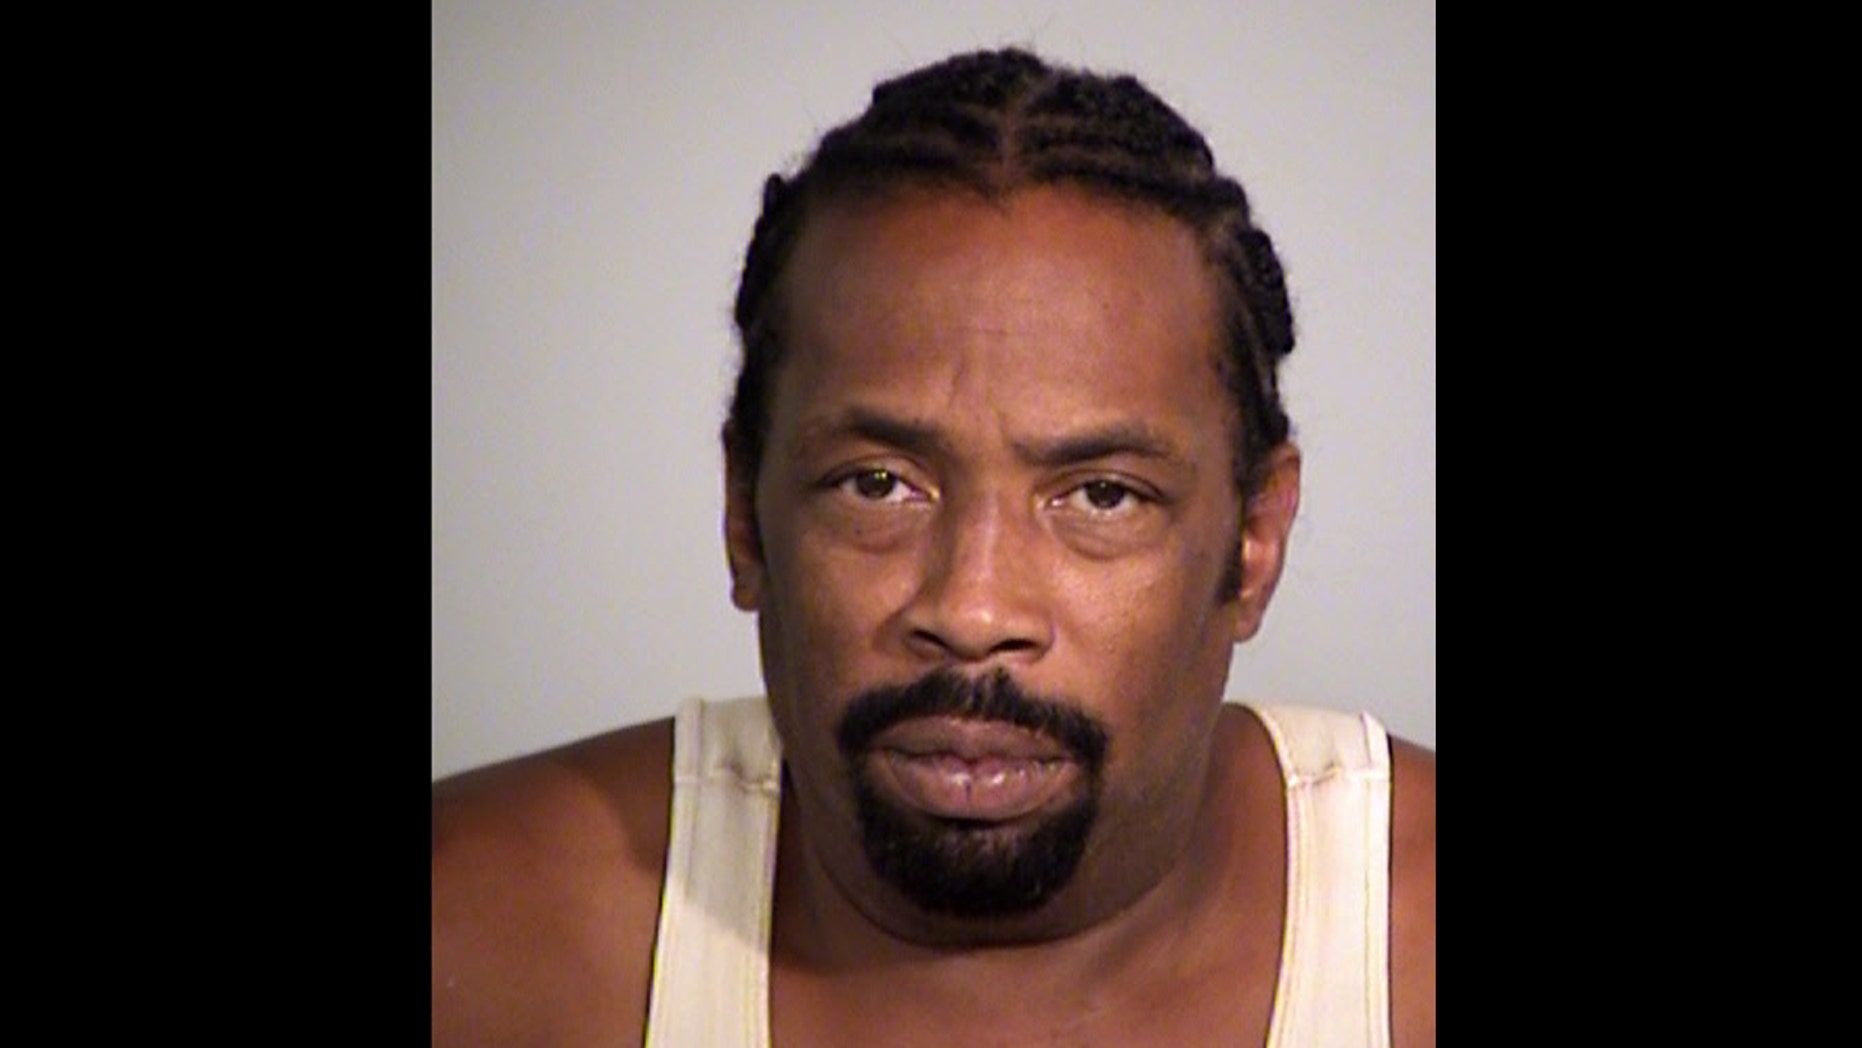 Michael Love was sentenced to 80 years in prison after shooting his ex-girlfriend and her brother while disguised as an elderly woman.